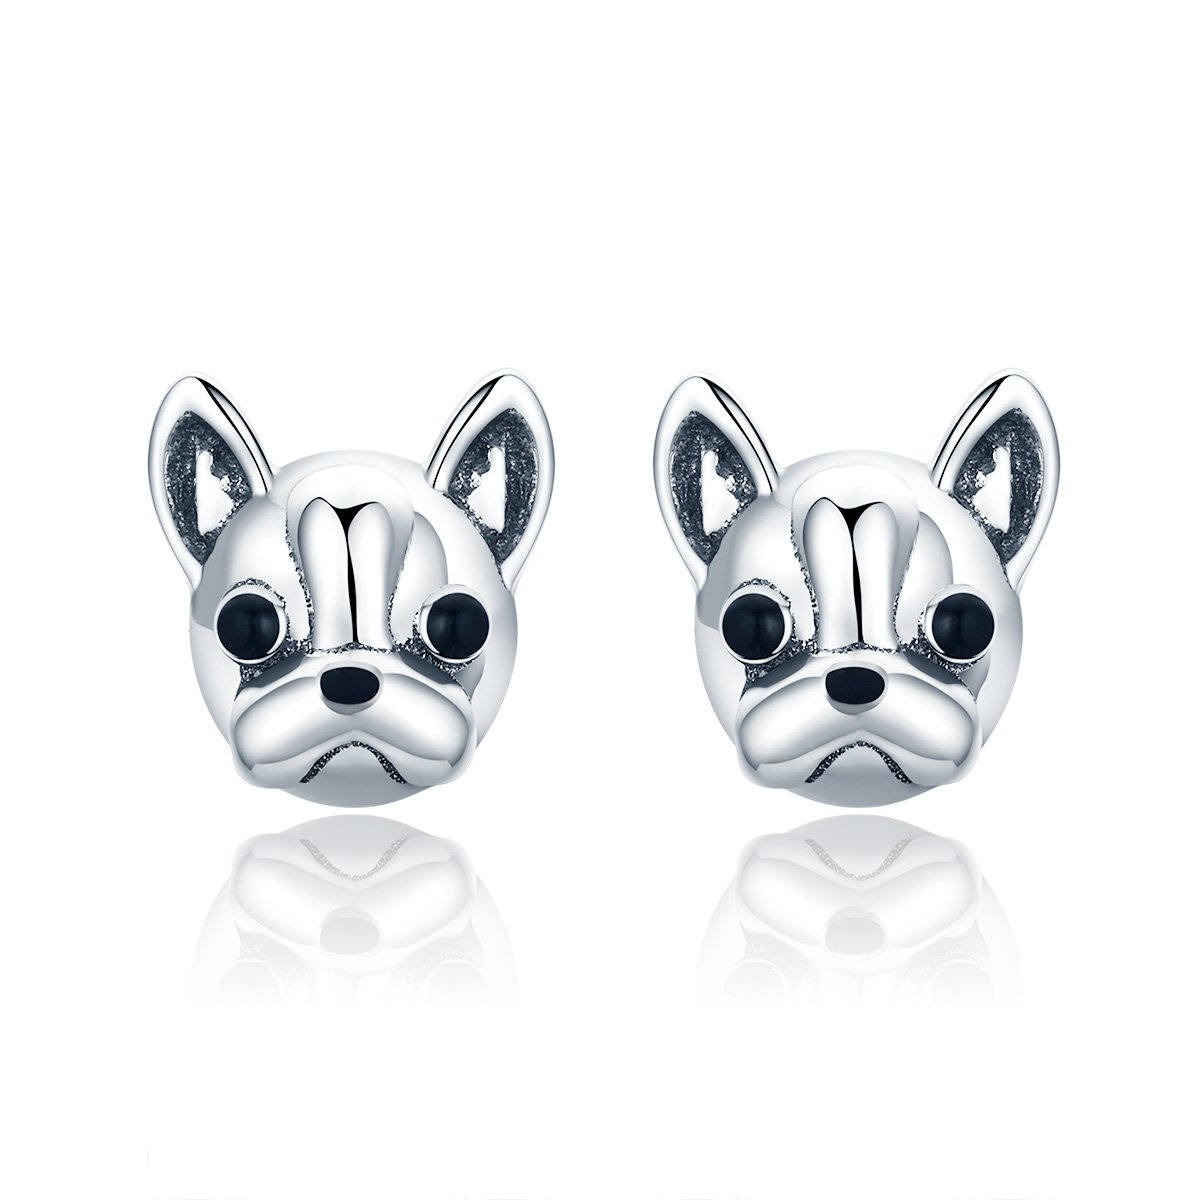 French Bulldog Stud Earrings Sterling Silver Stud Earrings for Girls Christmas Day Gift By Presentski HE01-6